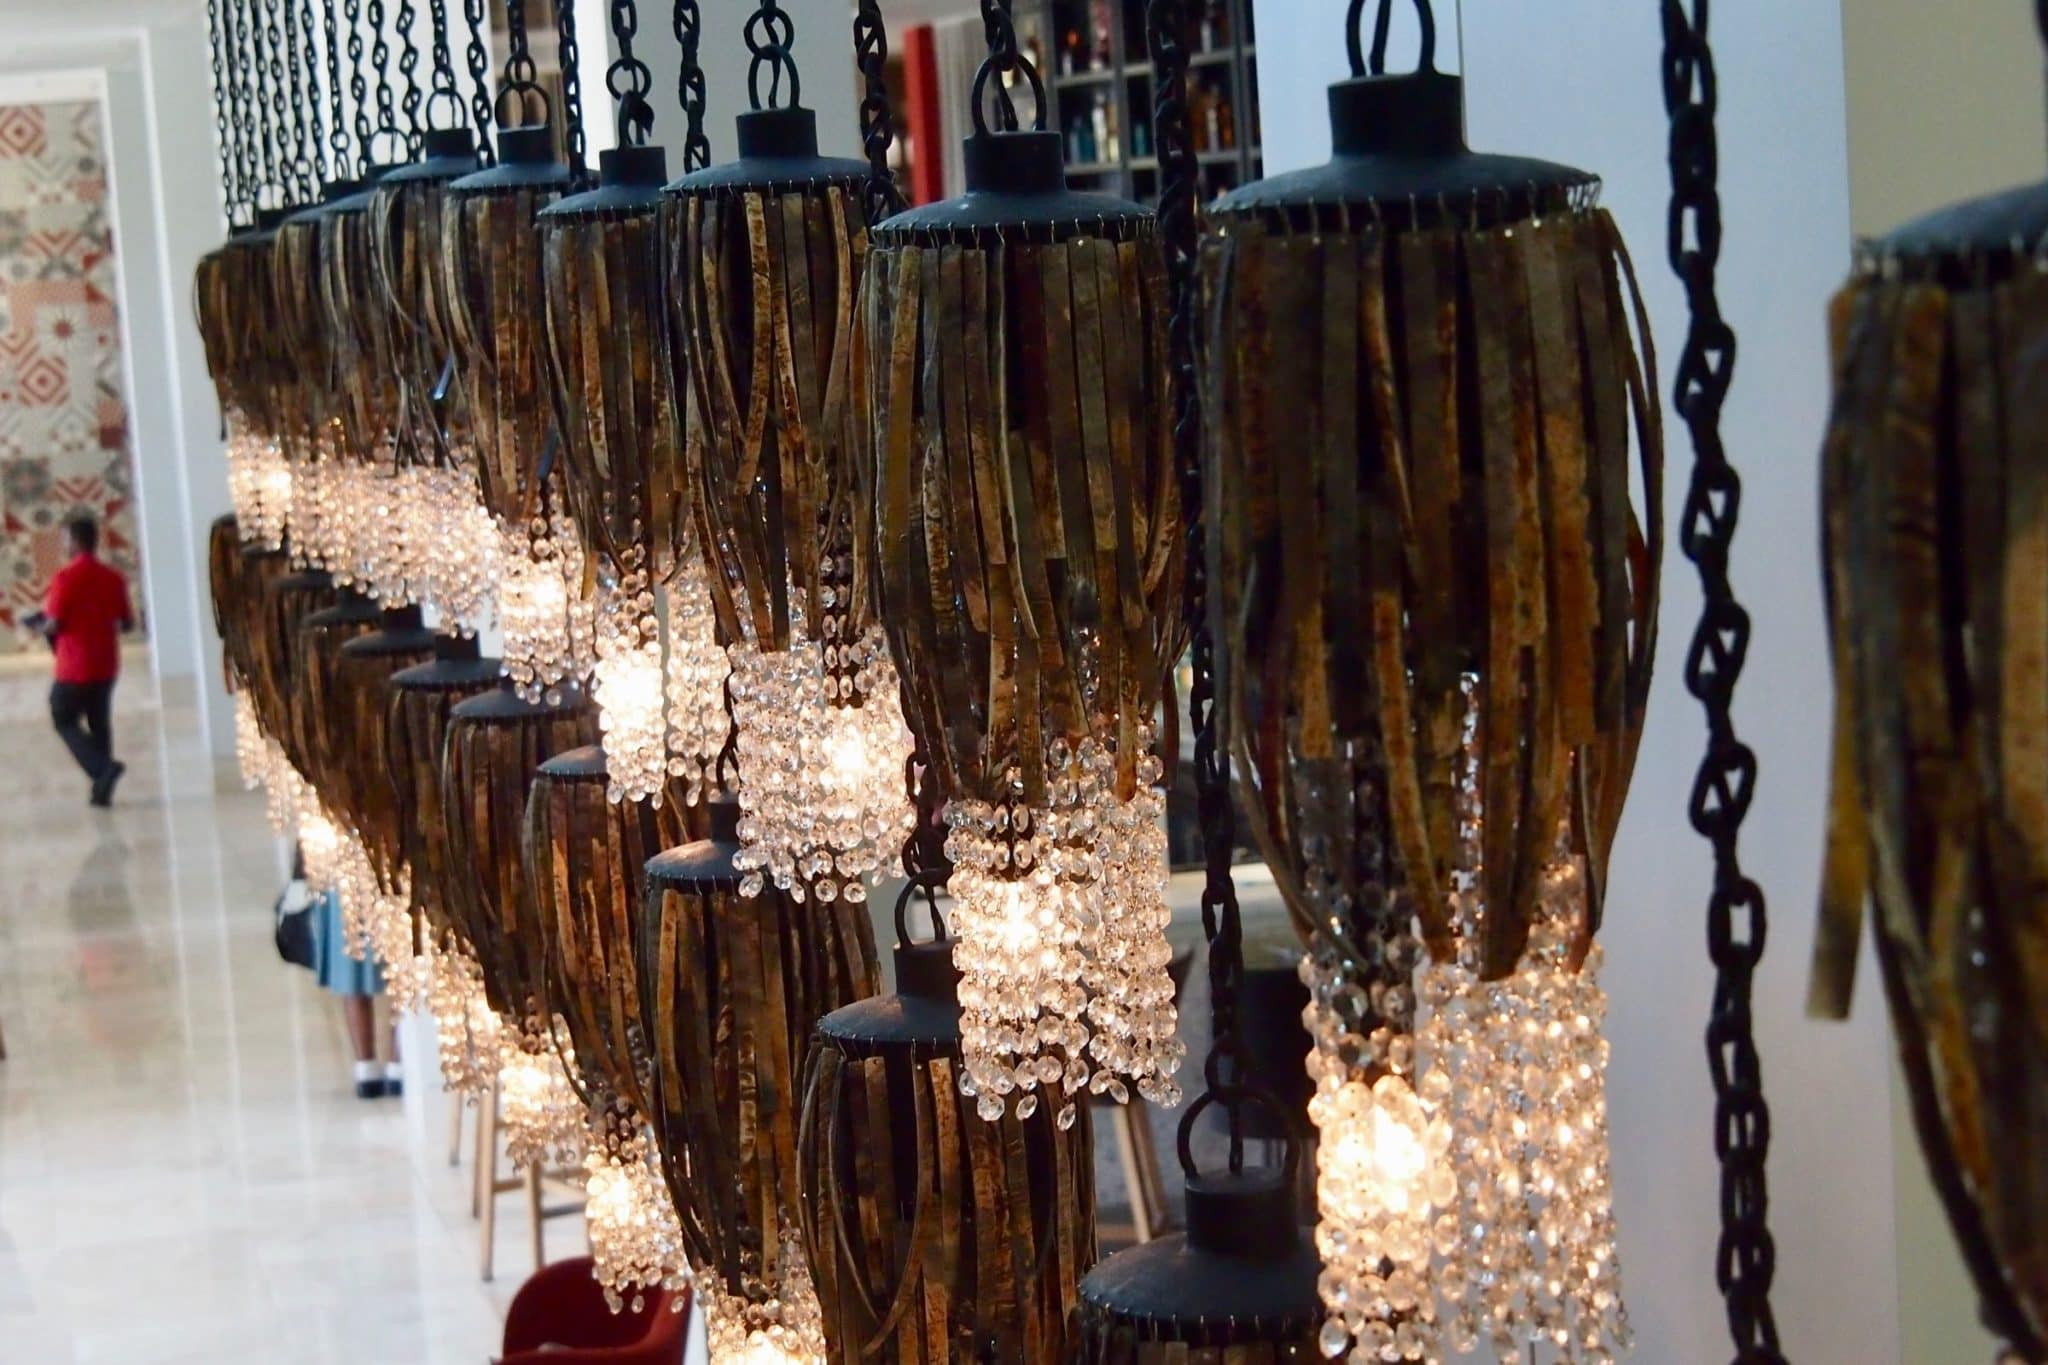 Uncommon Art: Cow Horns and Crystal Chandeliers in Haiti